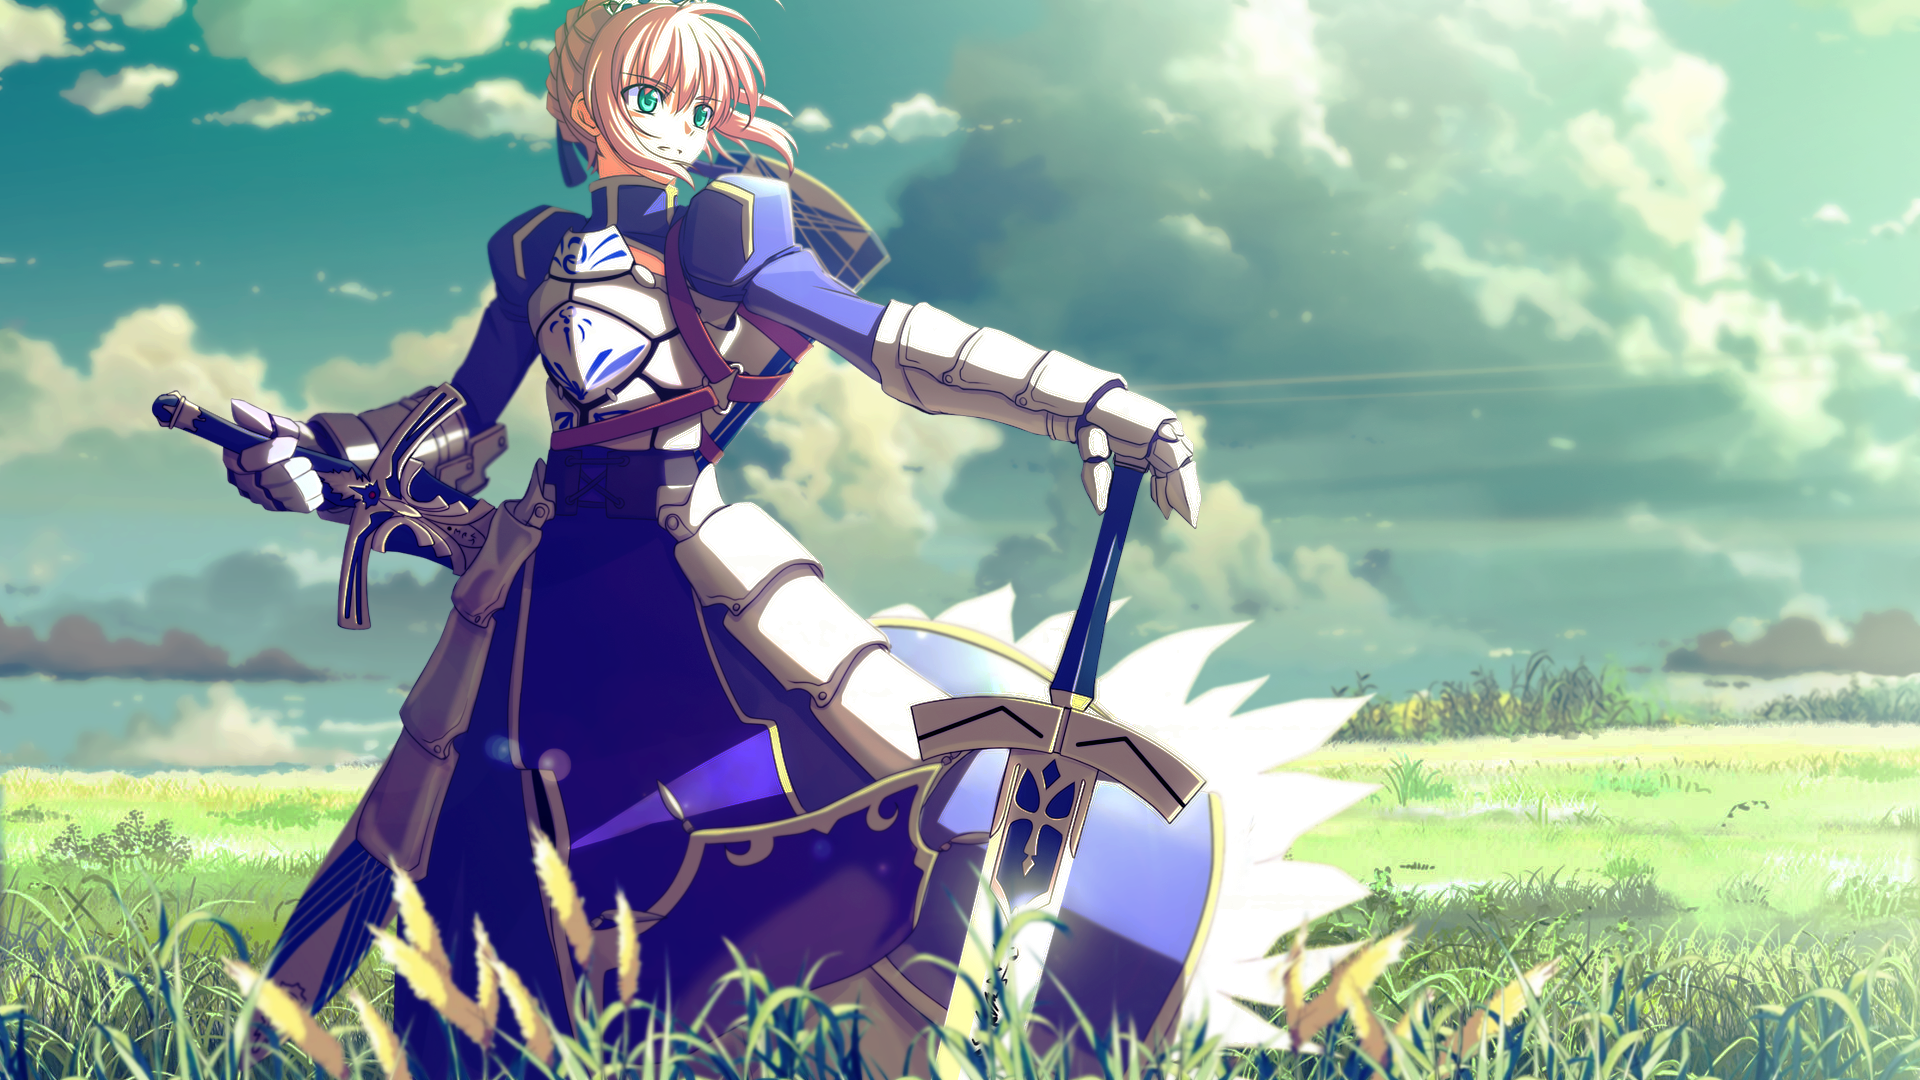 Free Download Fate Zero Saber Wallpaper Hd Fate Stay Night Saber